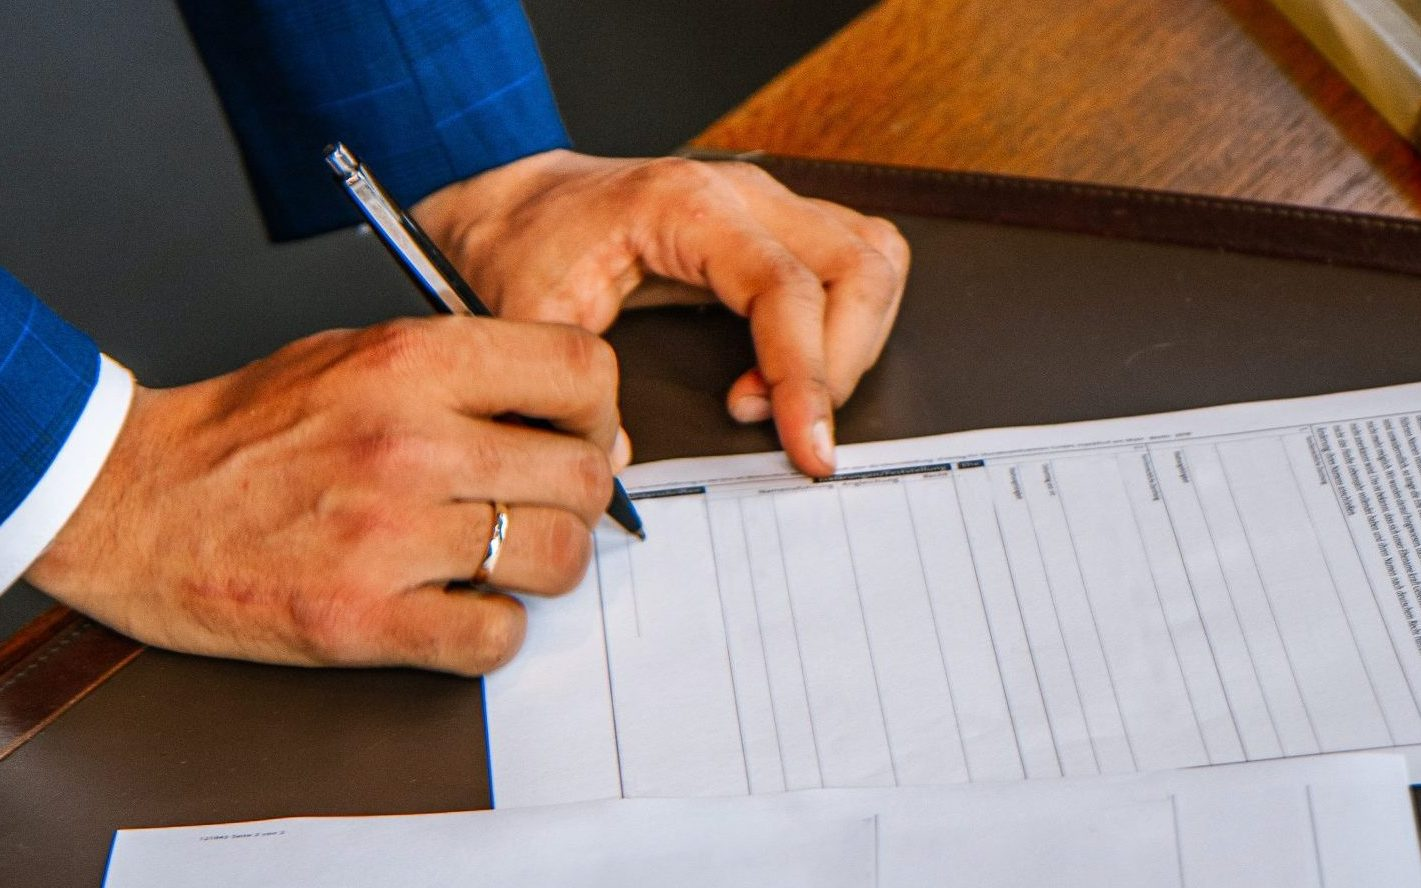 A man in a fancy blue suit writing with a pen on a contract.